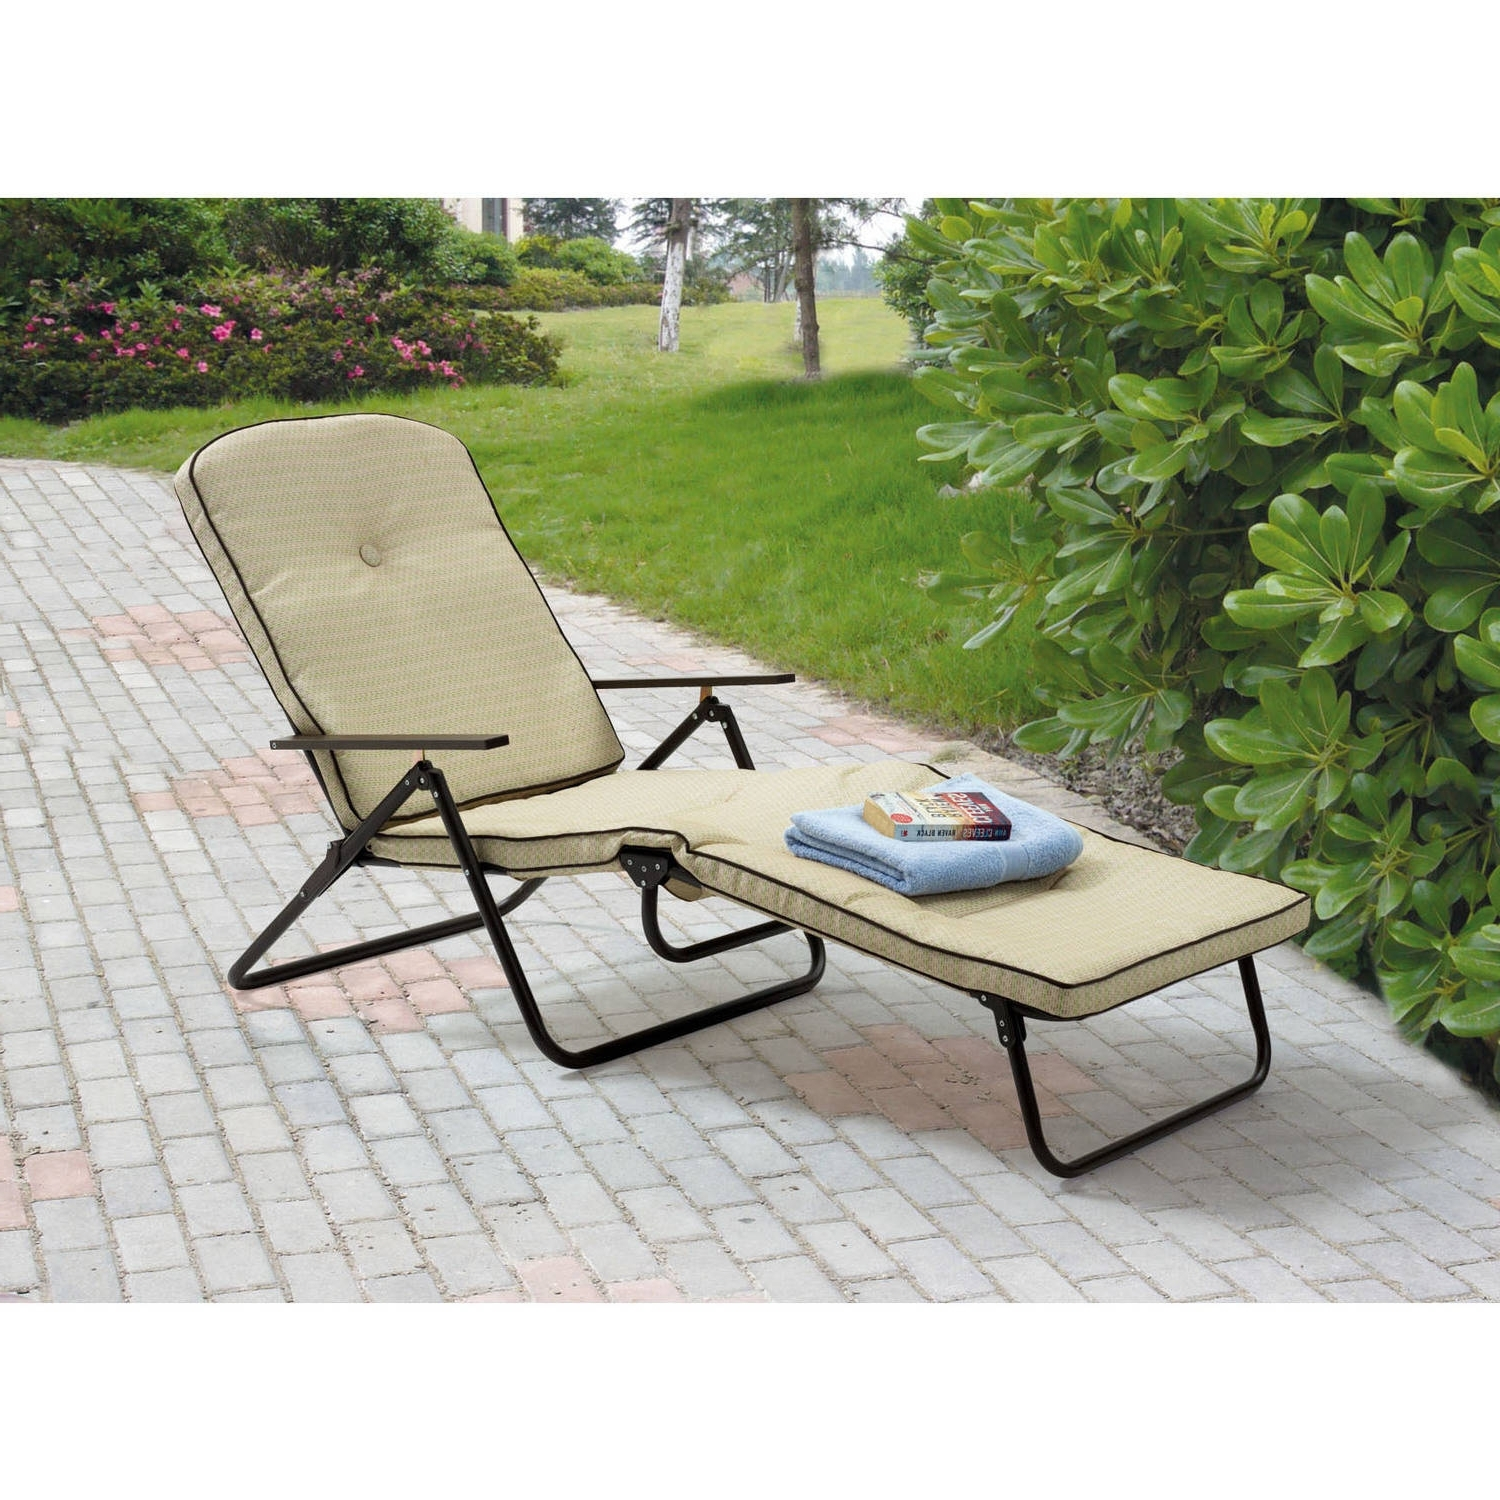 Walmart Chaise Lounges In Most Up To Date Mainstays Sand Dune Outdoor Padded Folding Chaise Lounge, Tan (View 15 of 15)